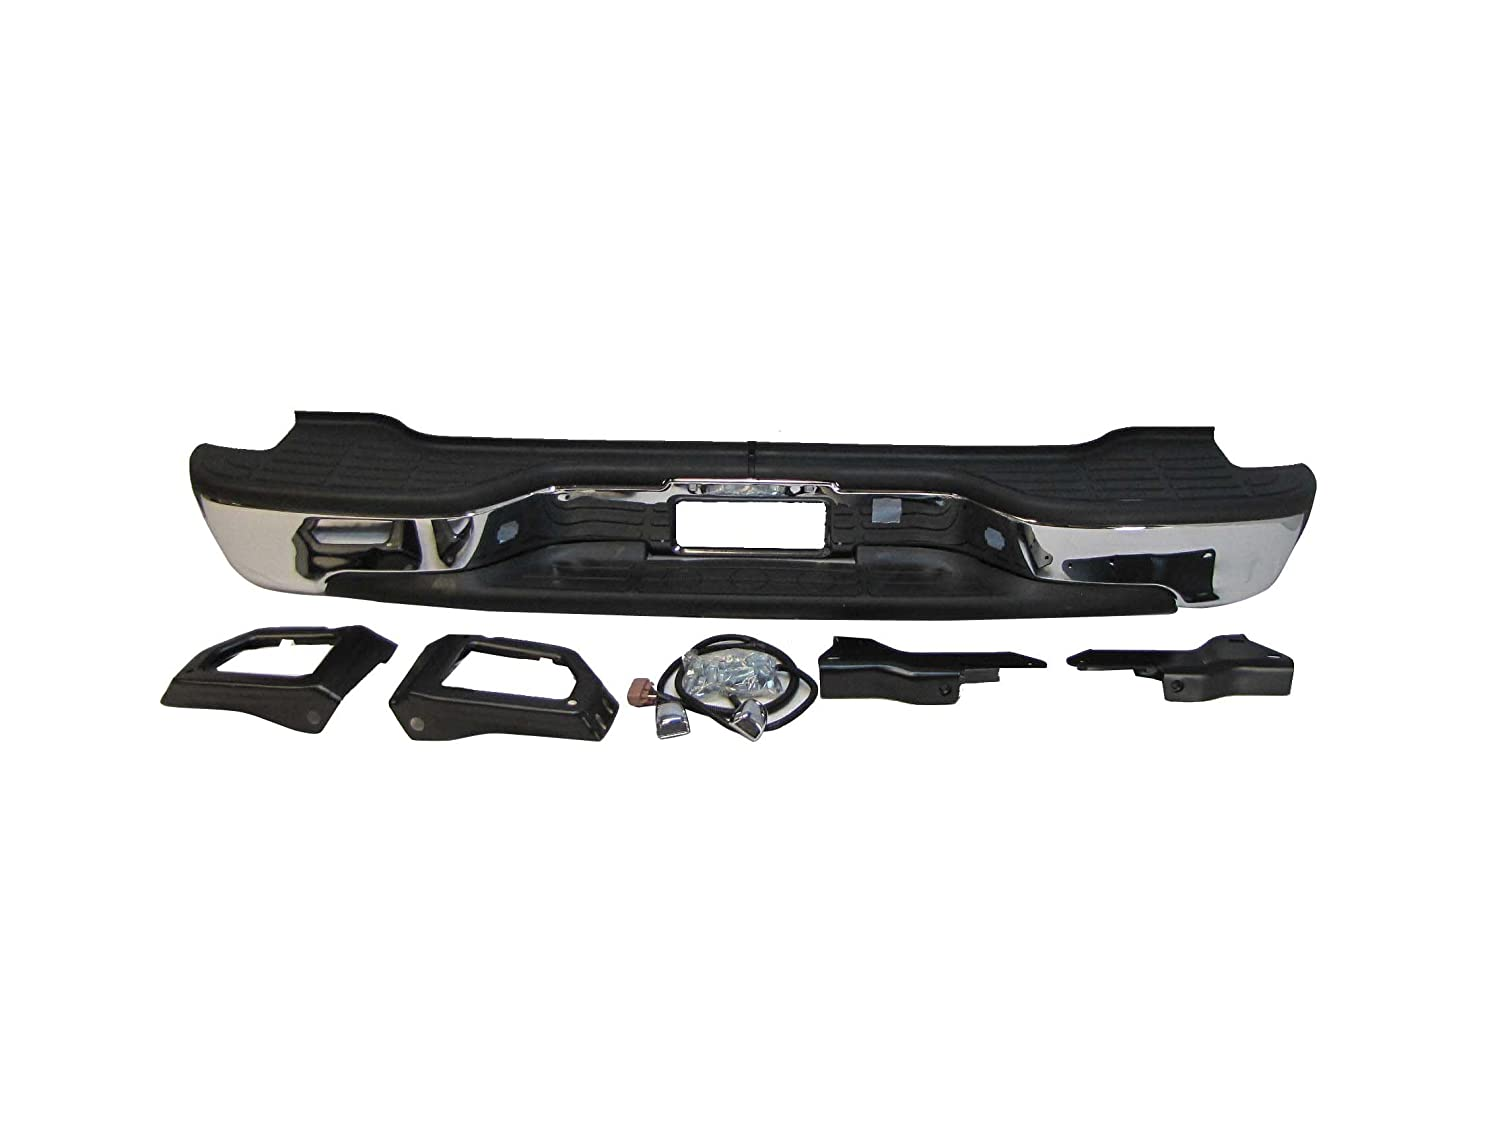 Tahoe 2004 chevy tahoe front bumper : Amazon.com: Rear Step Bumper ASSY 2000 2001 2002 2003 2004 2005 ...